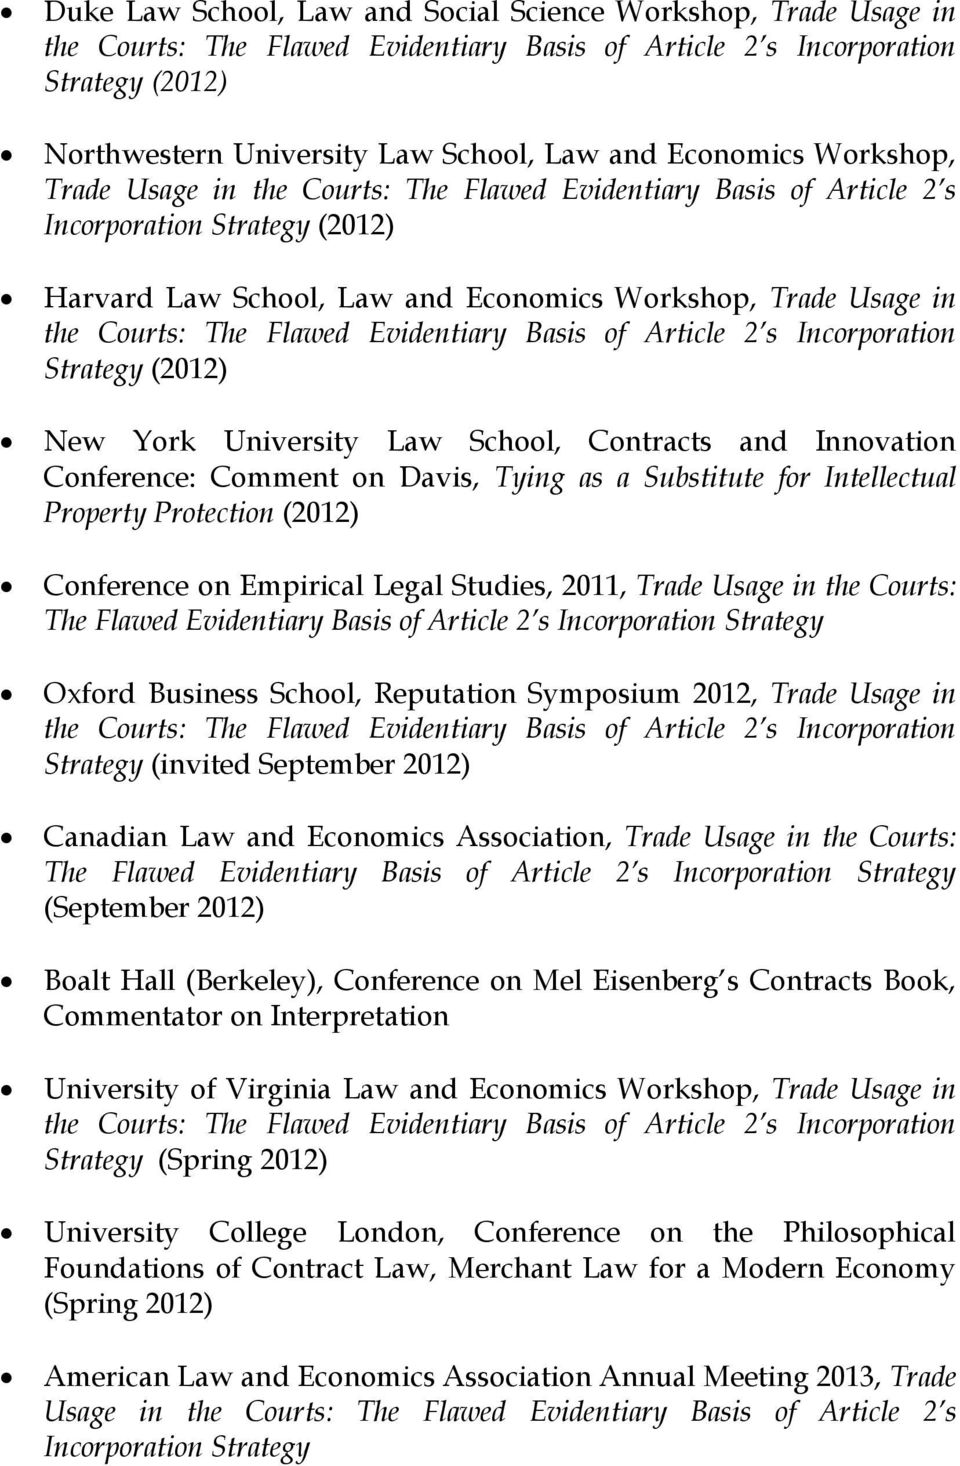 Flawed Evidentiary Basis of Article 2 s Incorporation Strategy (2012) New York University Law School, Contracts and Innovation Conference: Comment on Davis, Tying as a Substitute for Intellectual